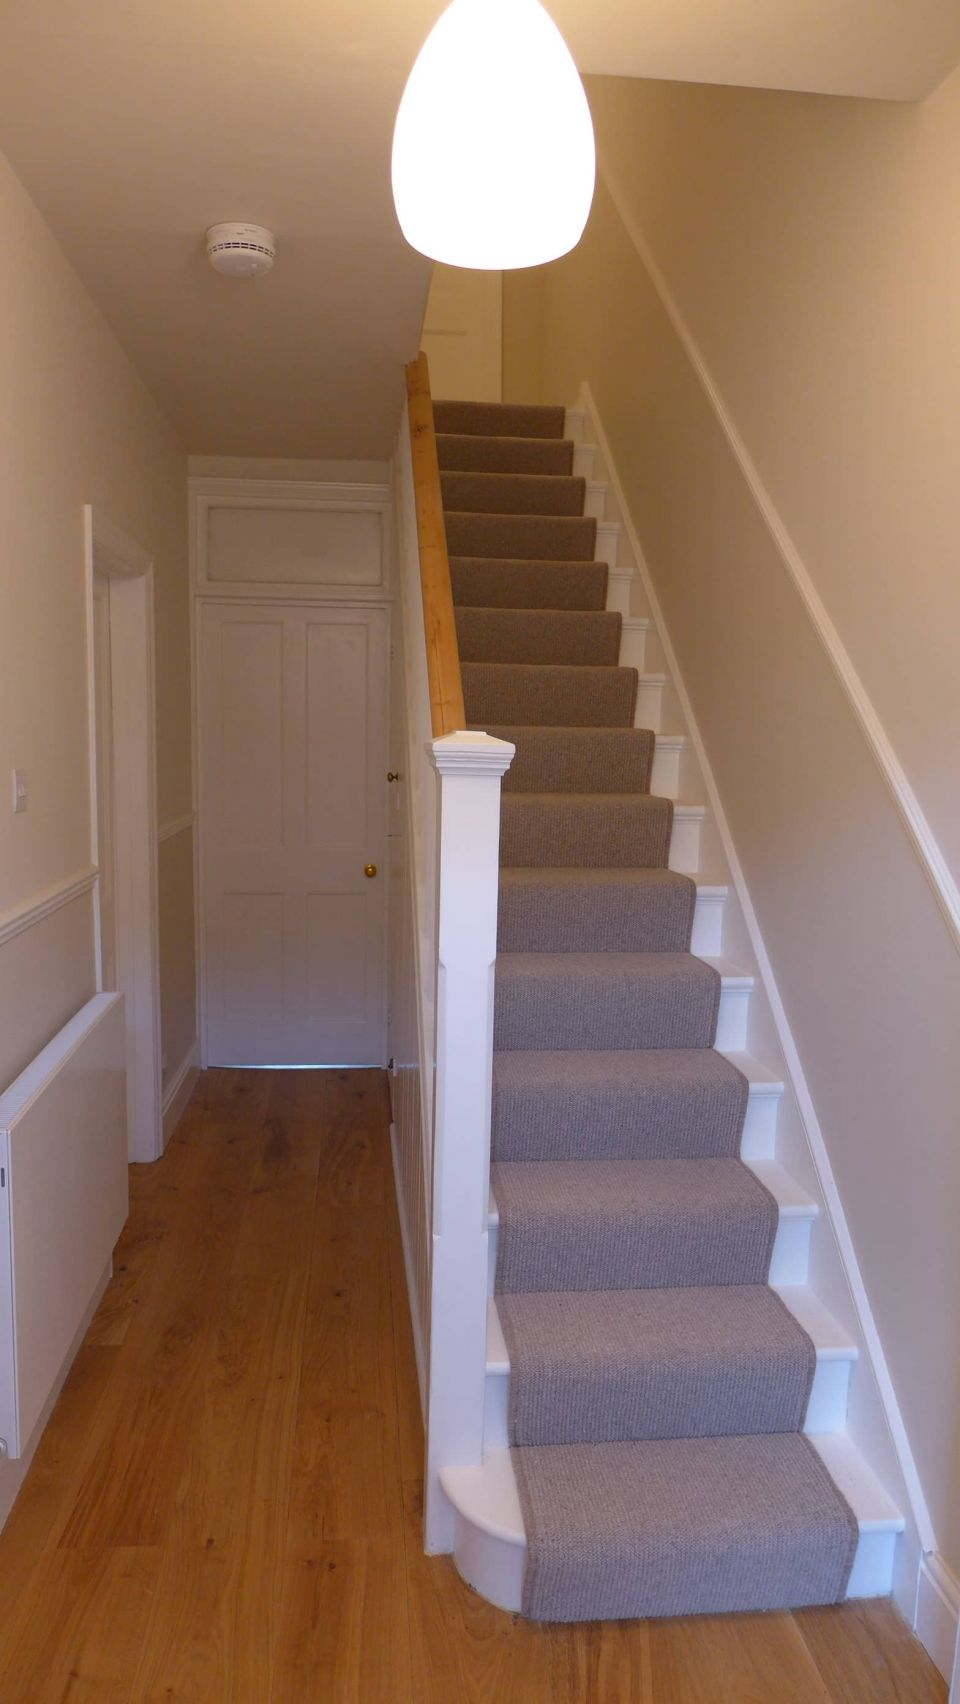 decorated hall and stairway with carpet stair runner after decoration